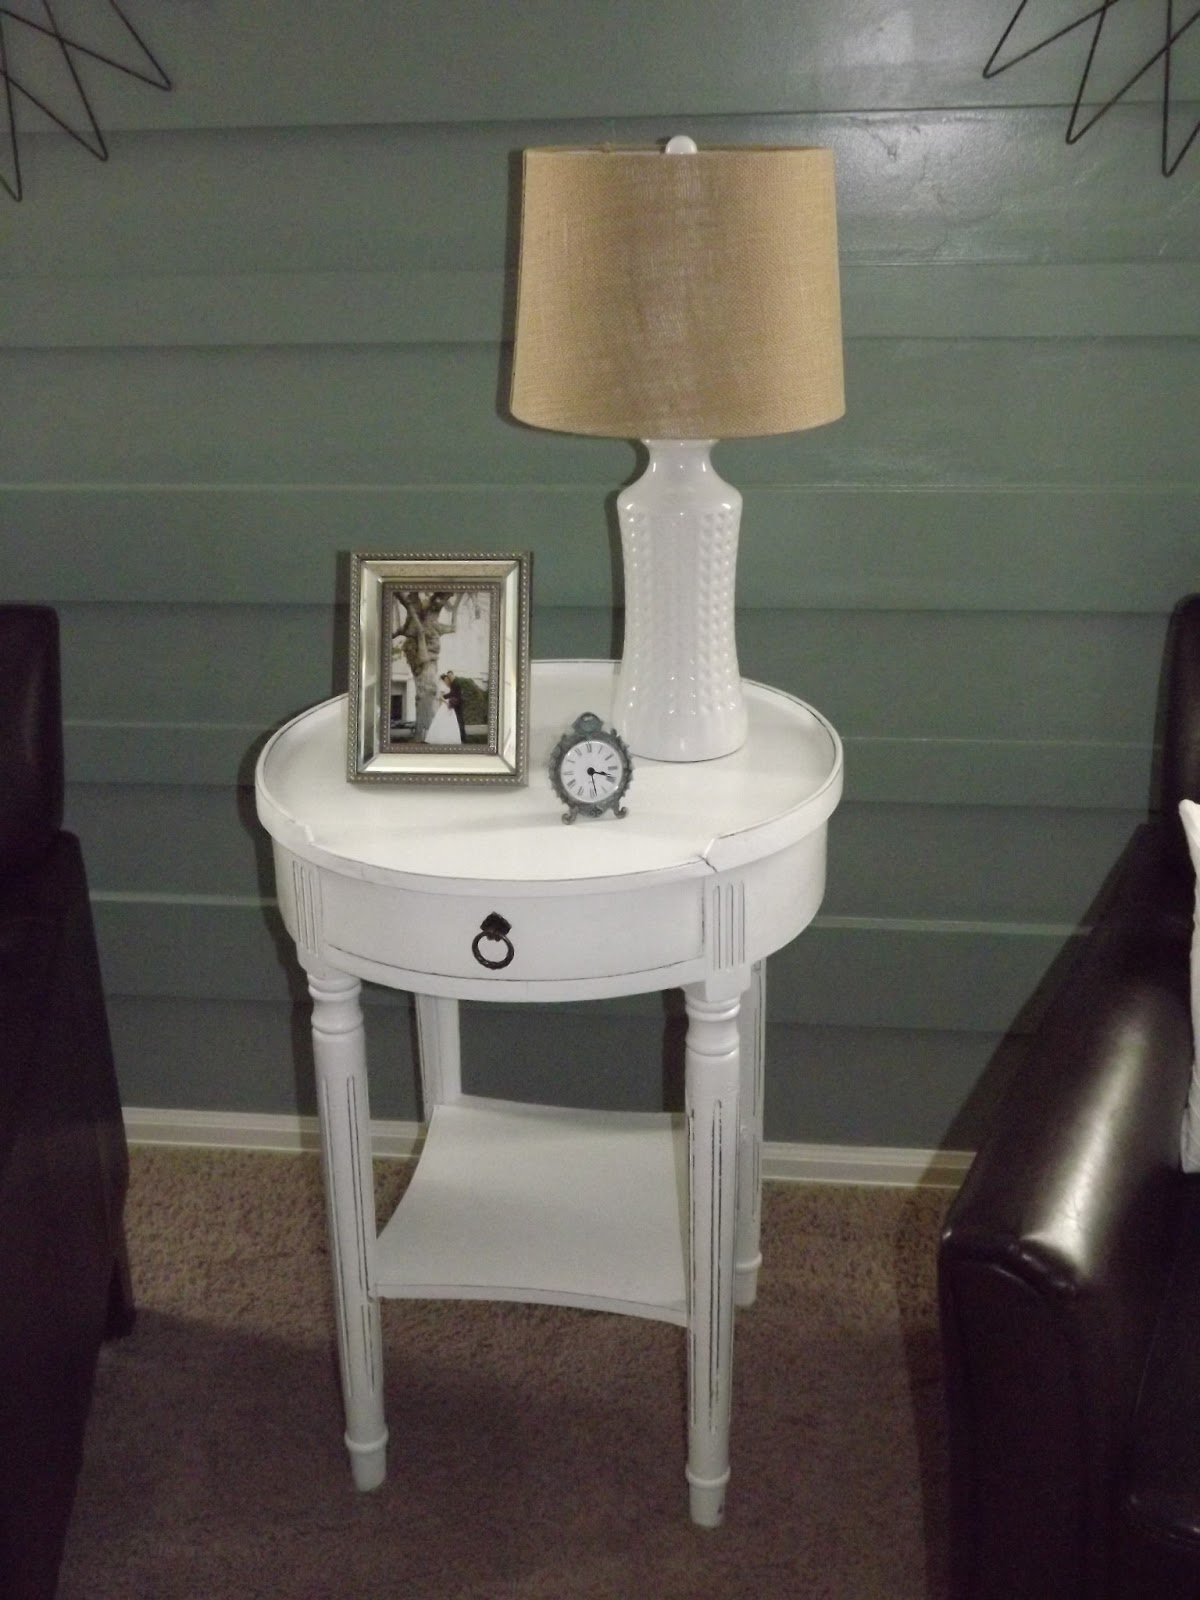 The End Table I Also Got From Downeast. I Love The White! I Looked Forever  For An Entertainment Center That Was White. RCWilley Doesnu0027t Sell Them.